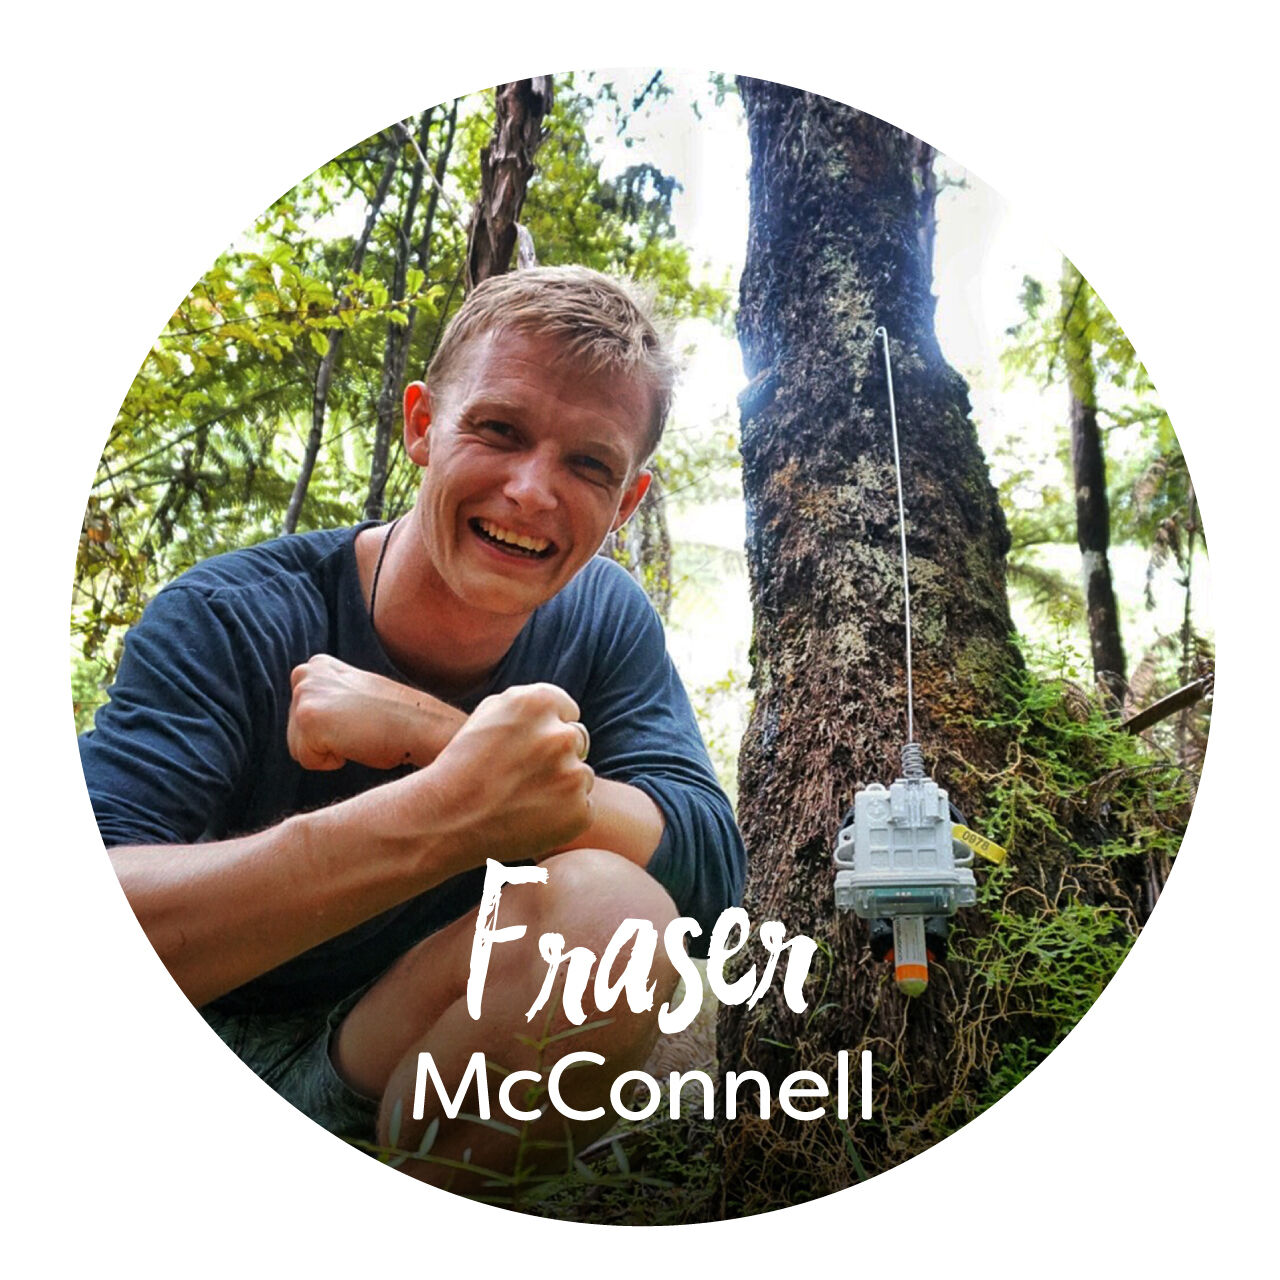 A picture of Fraser McConnell